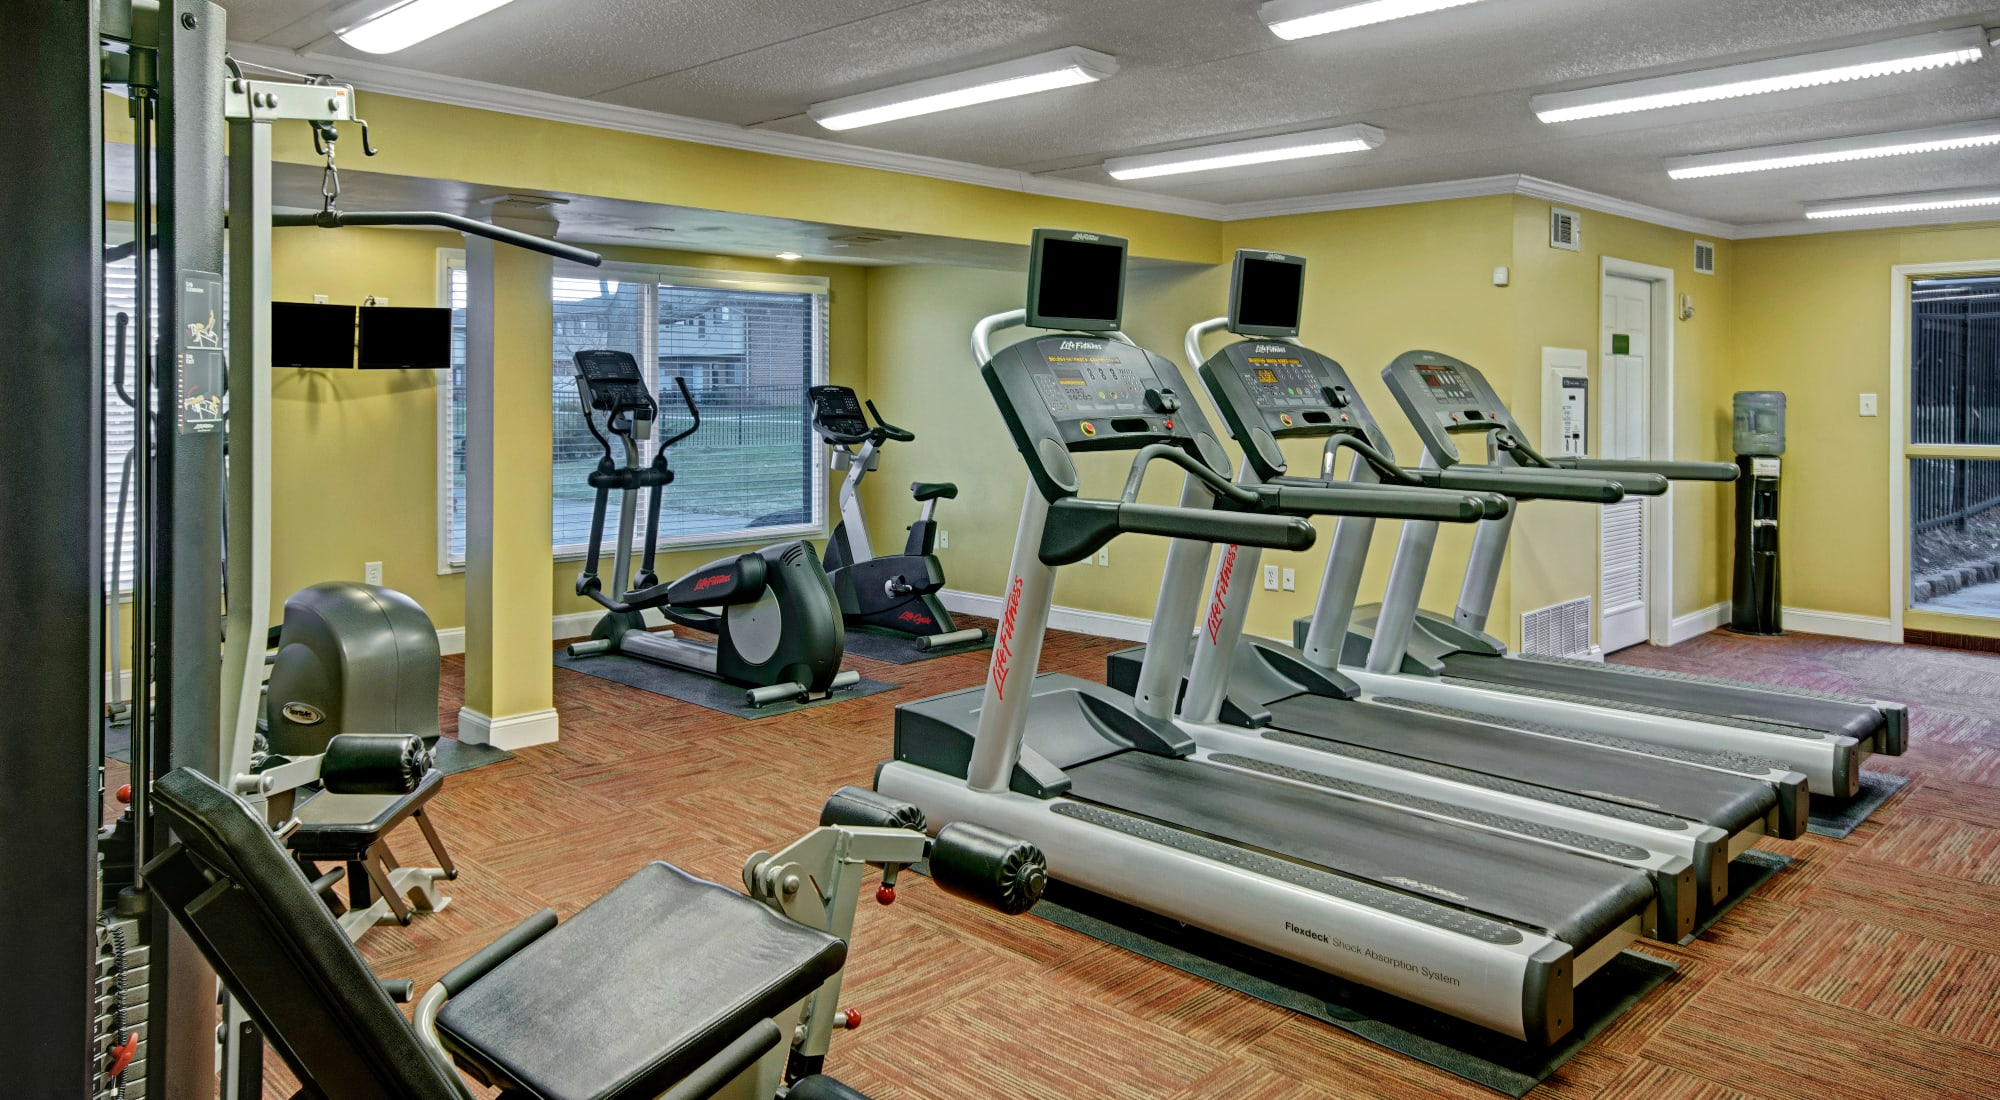 Amenities at Racquet Club Apartments and Townhomes in Levittown, Pennsylvania